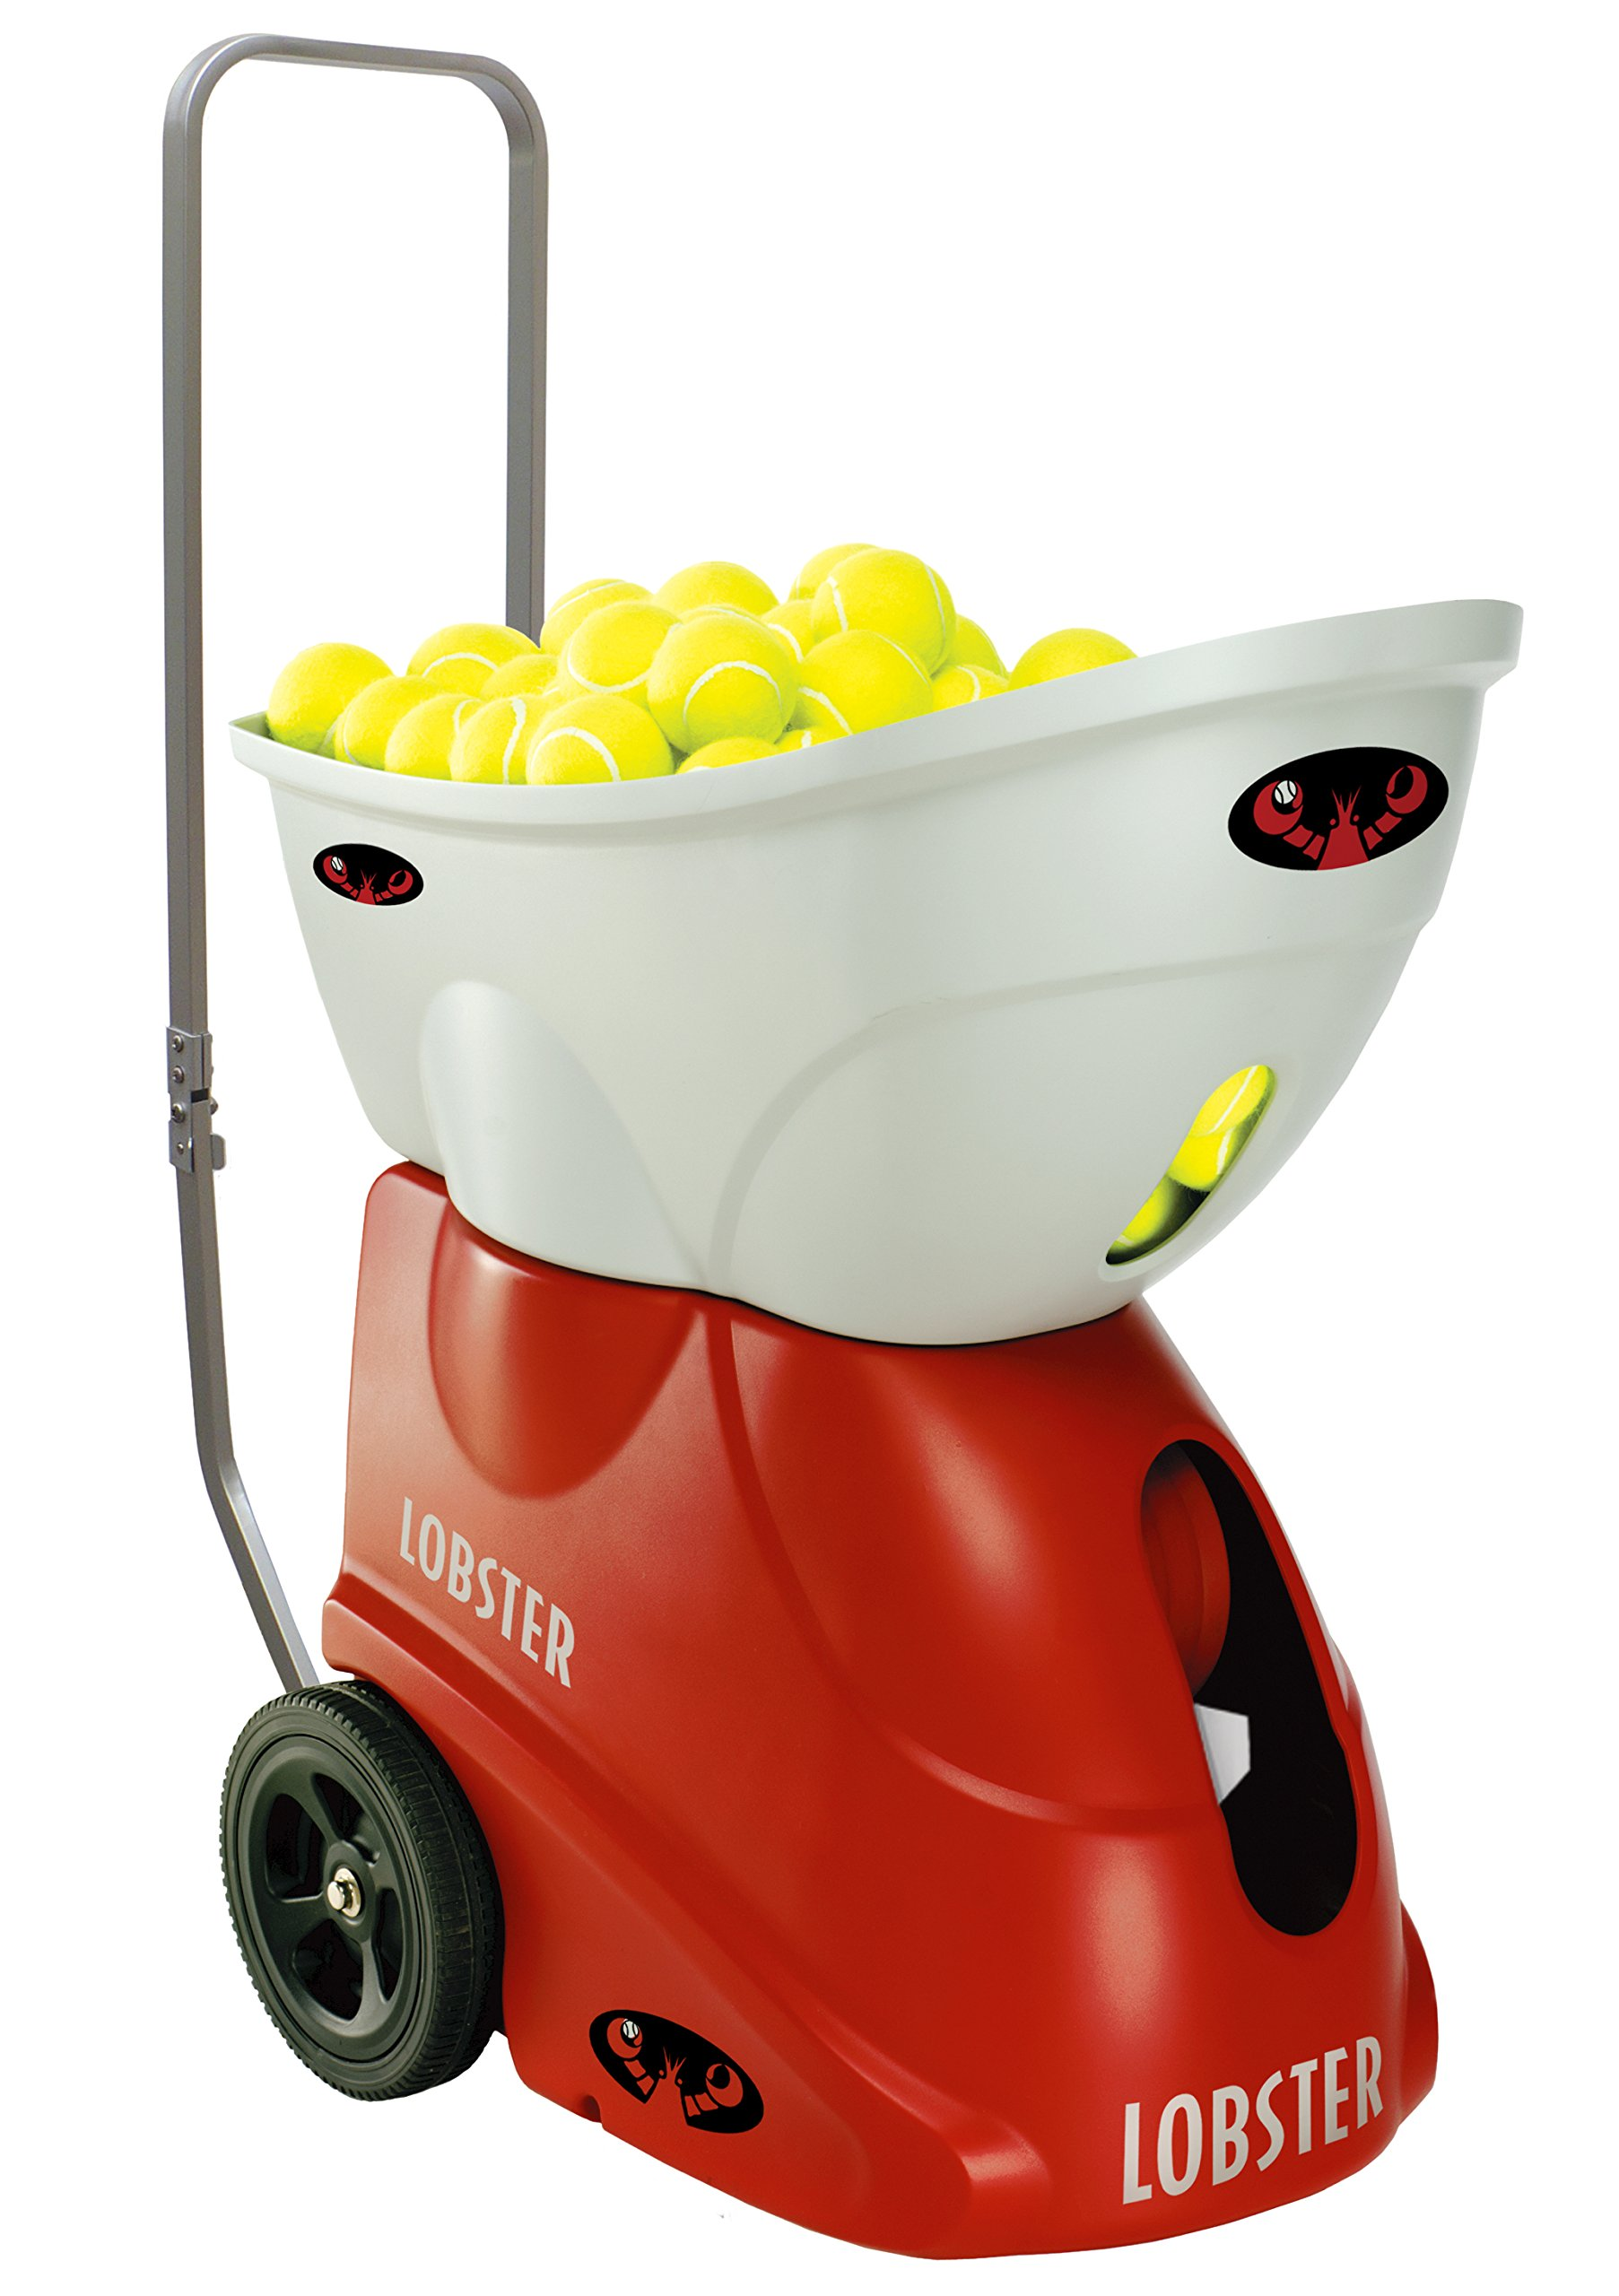 Lobster Sports Elite Liberty Tennis Ball Machine by Lobster Sports